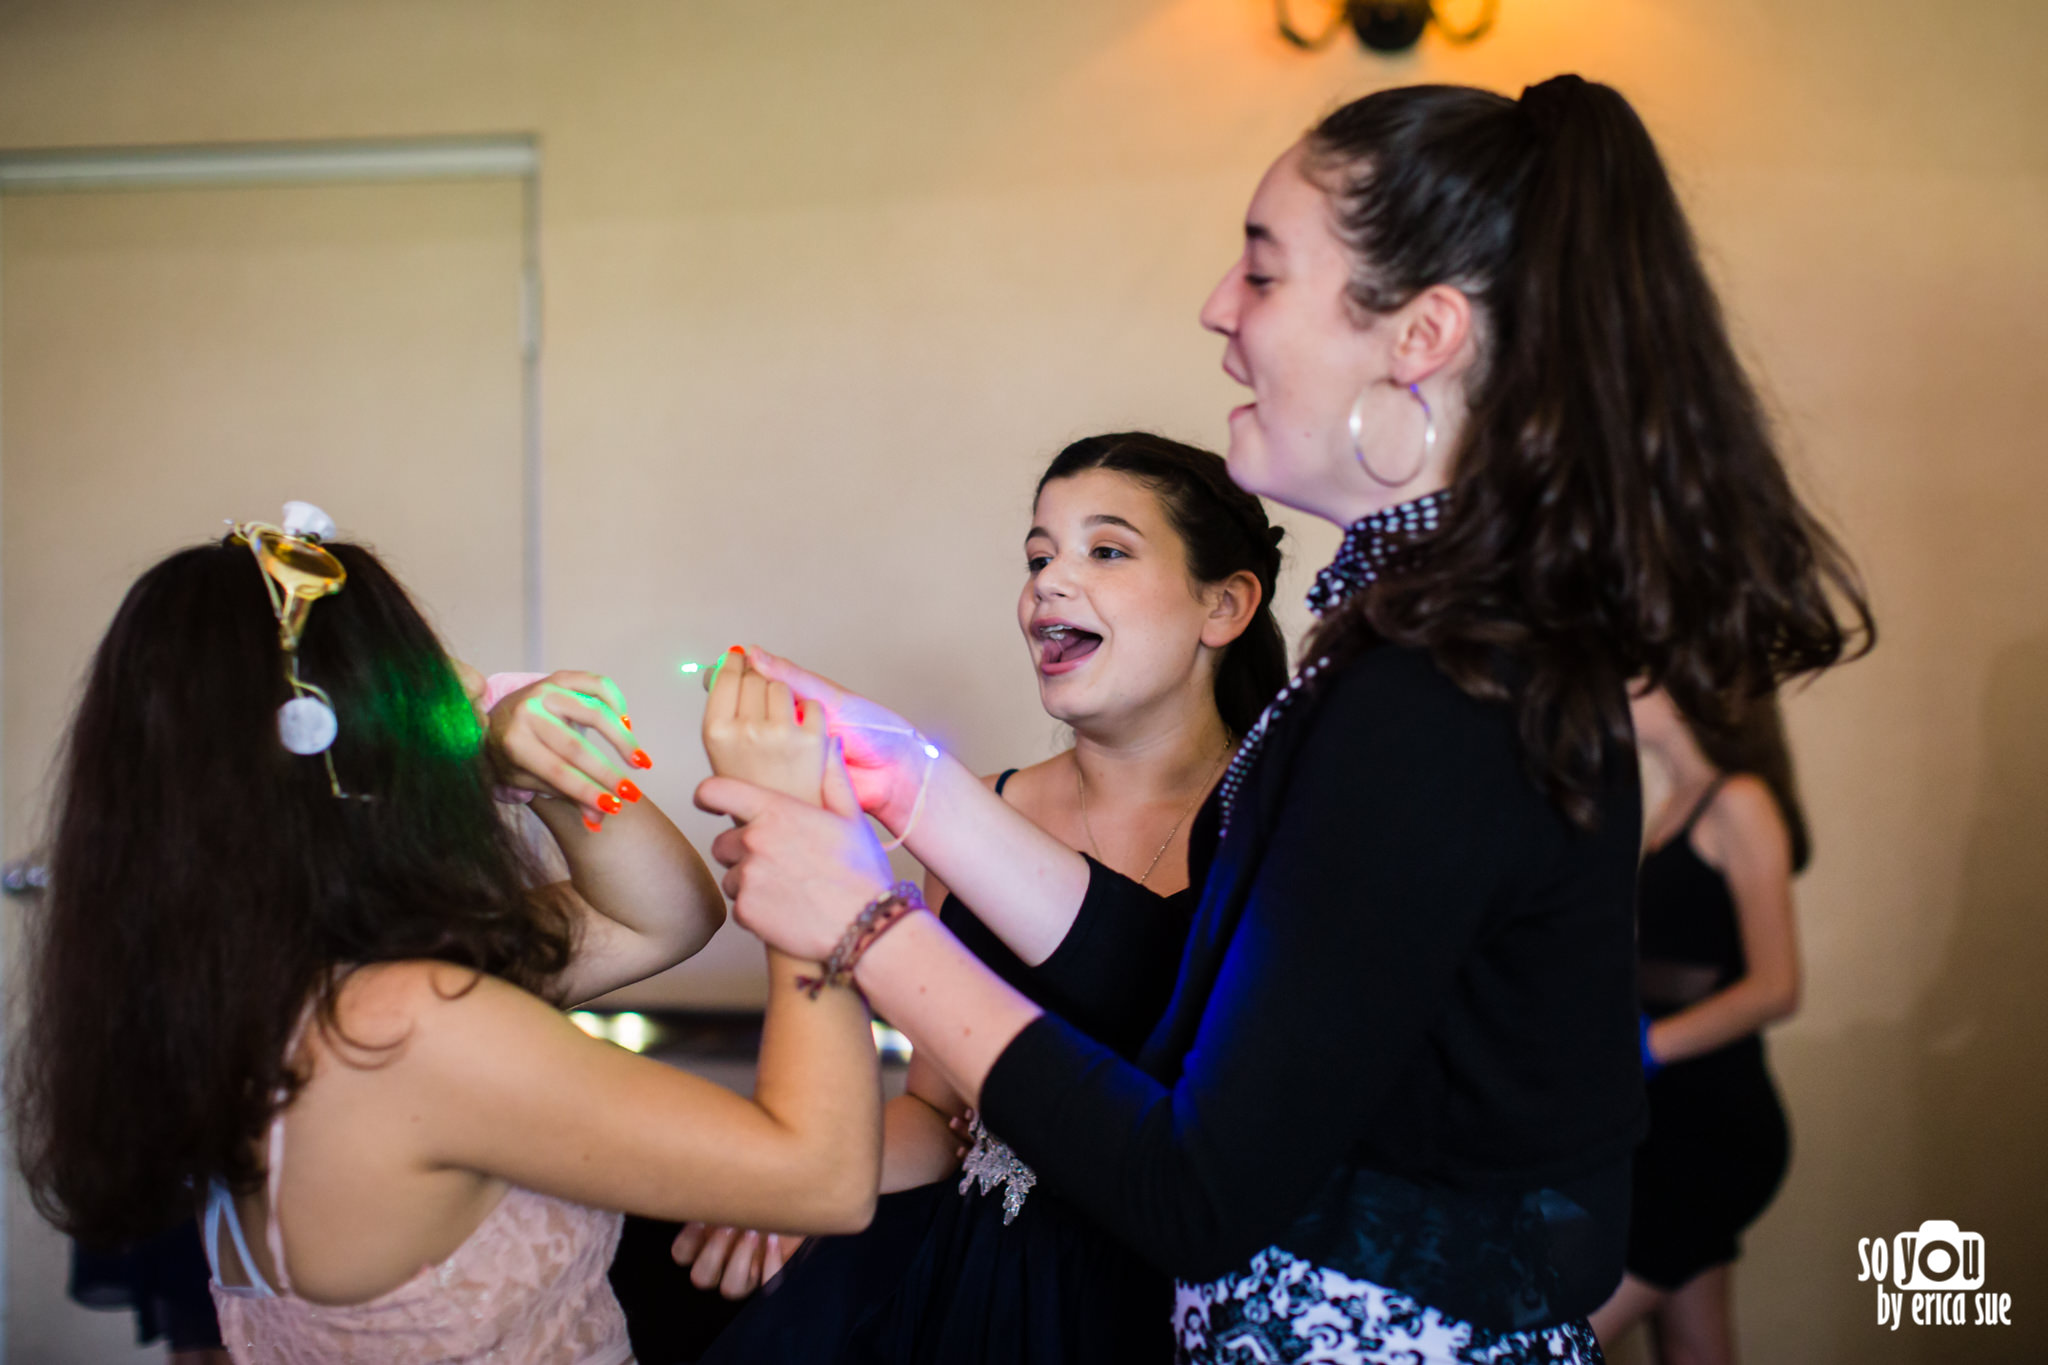 so-you-by-erica-sue-bnai-mitzvah-photographer-delray-beach-golf-club-fl-3782.jpg